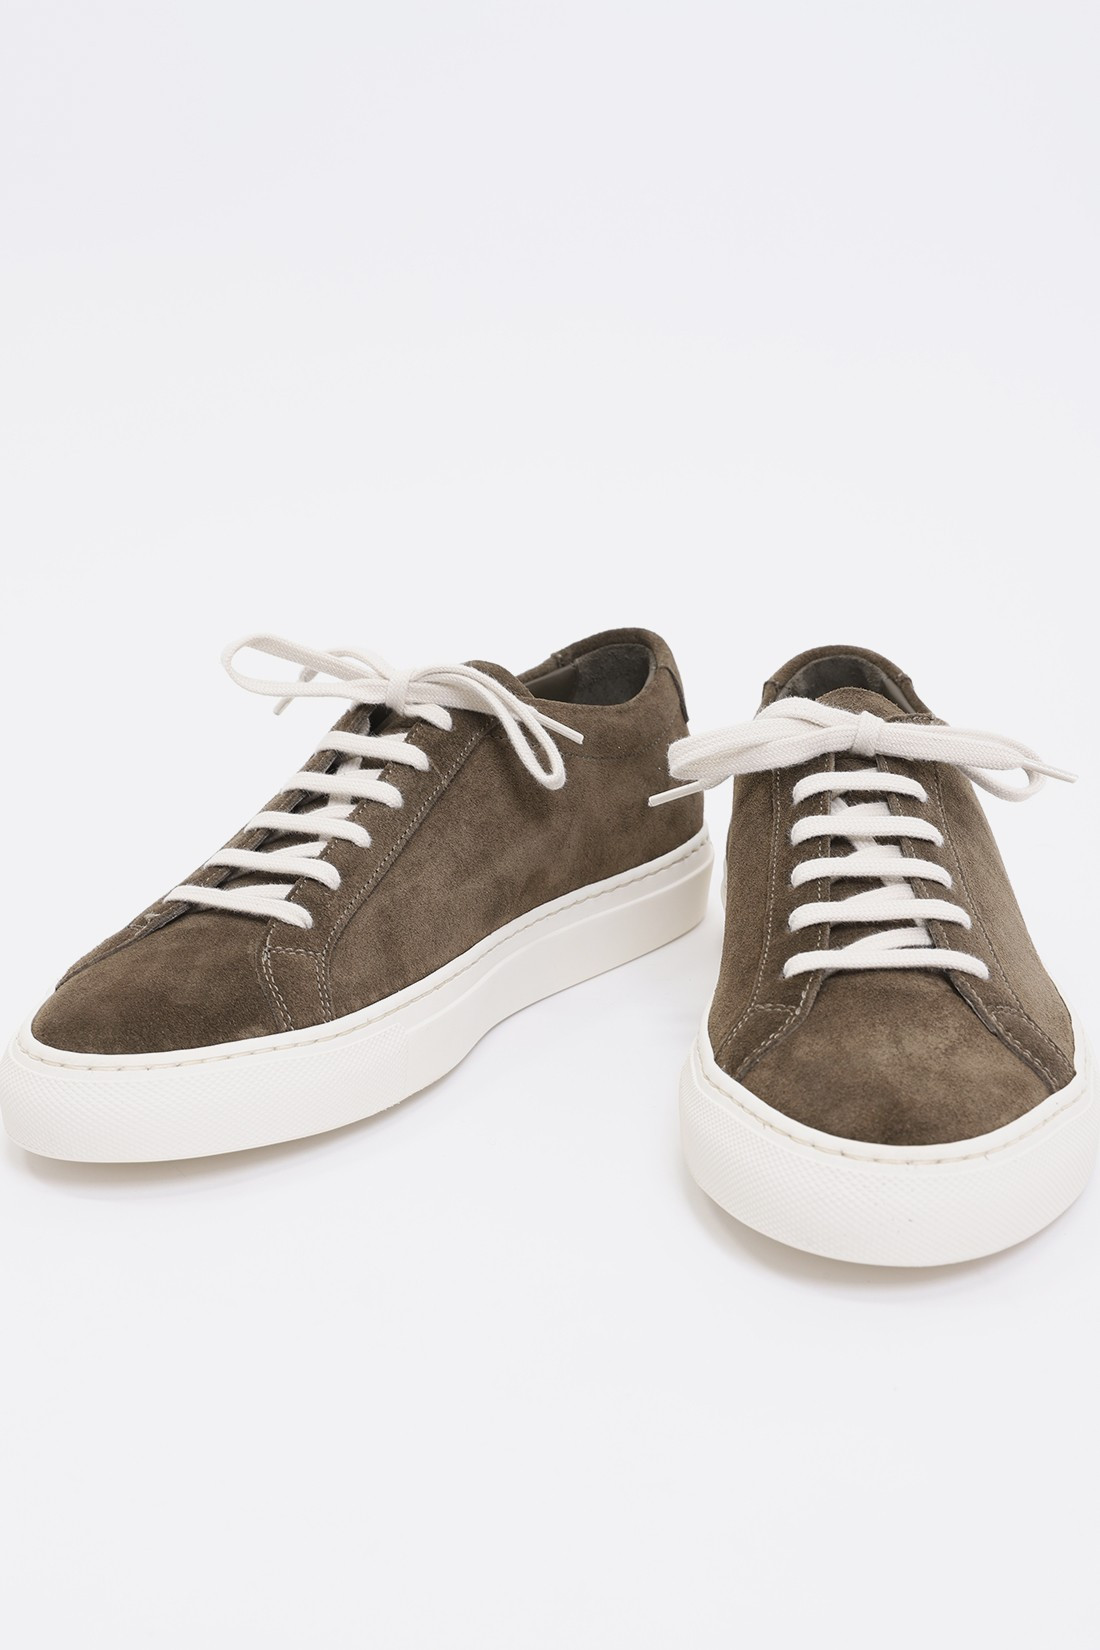 COMMON PROJECTS / Original achilles low in suede Olive 1010